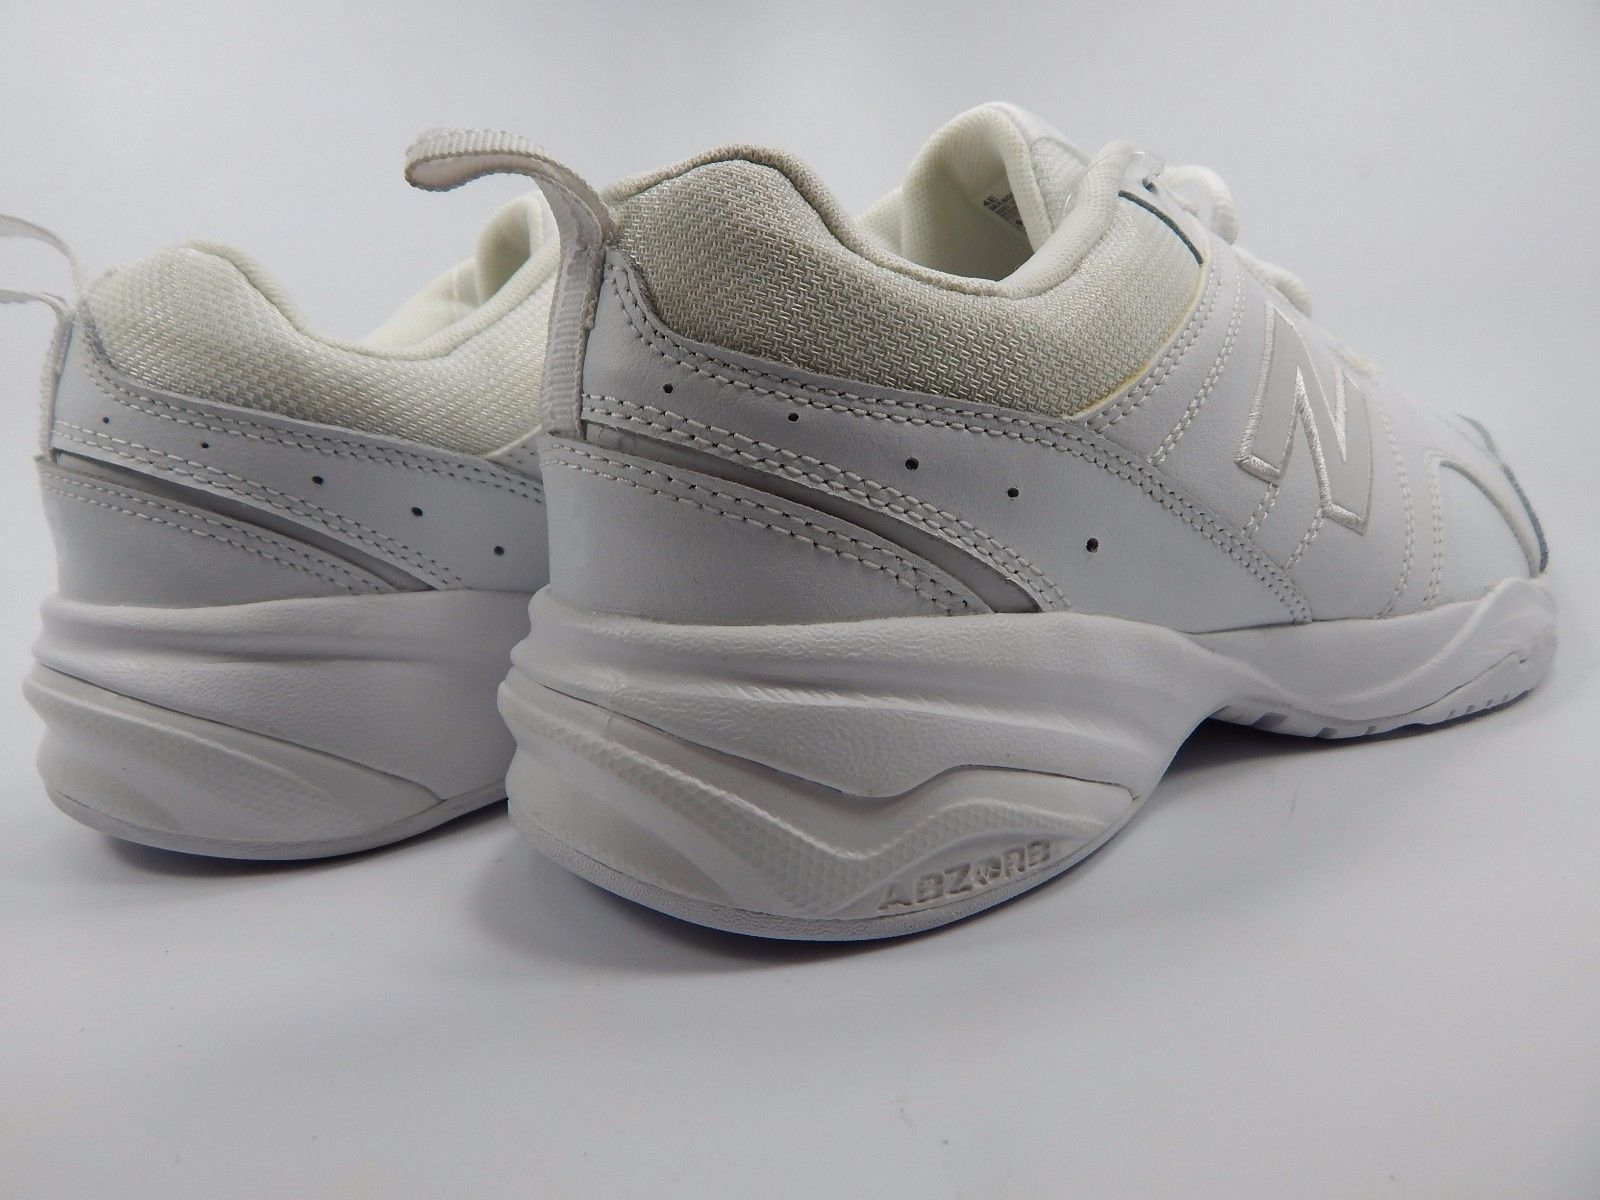 New Balance 609 v3 Men's Training Shoes Size: 9.5 4E EXTRA WIDE EU 43 MX609AZ3